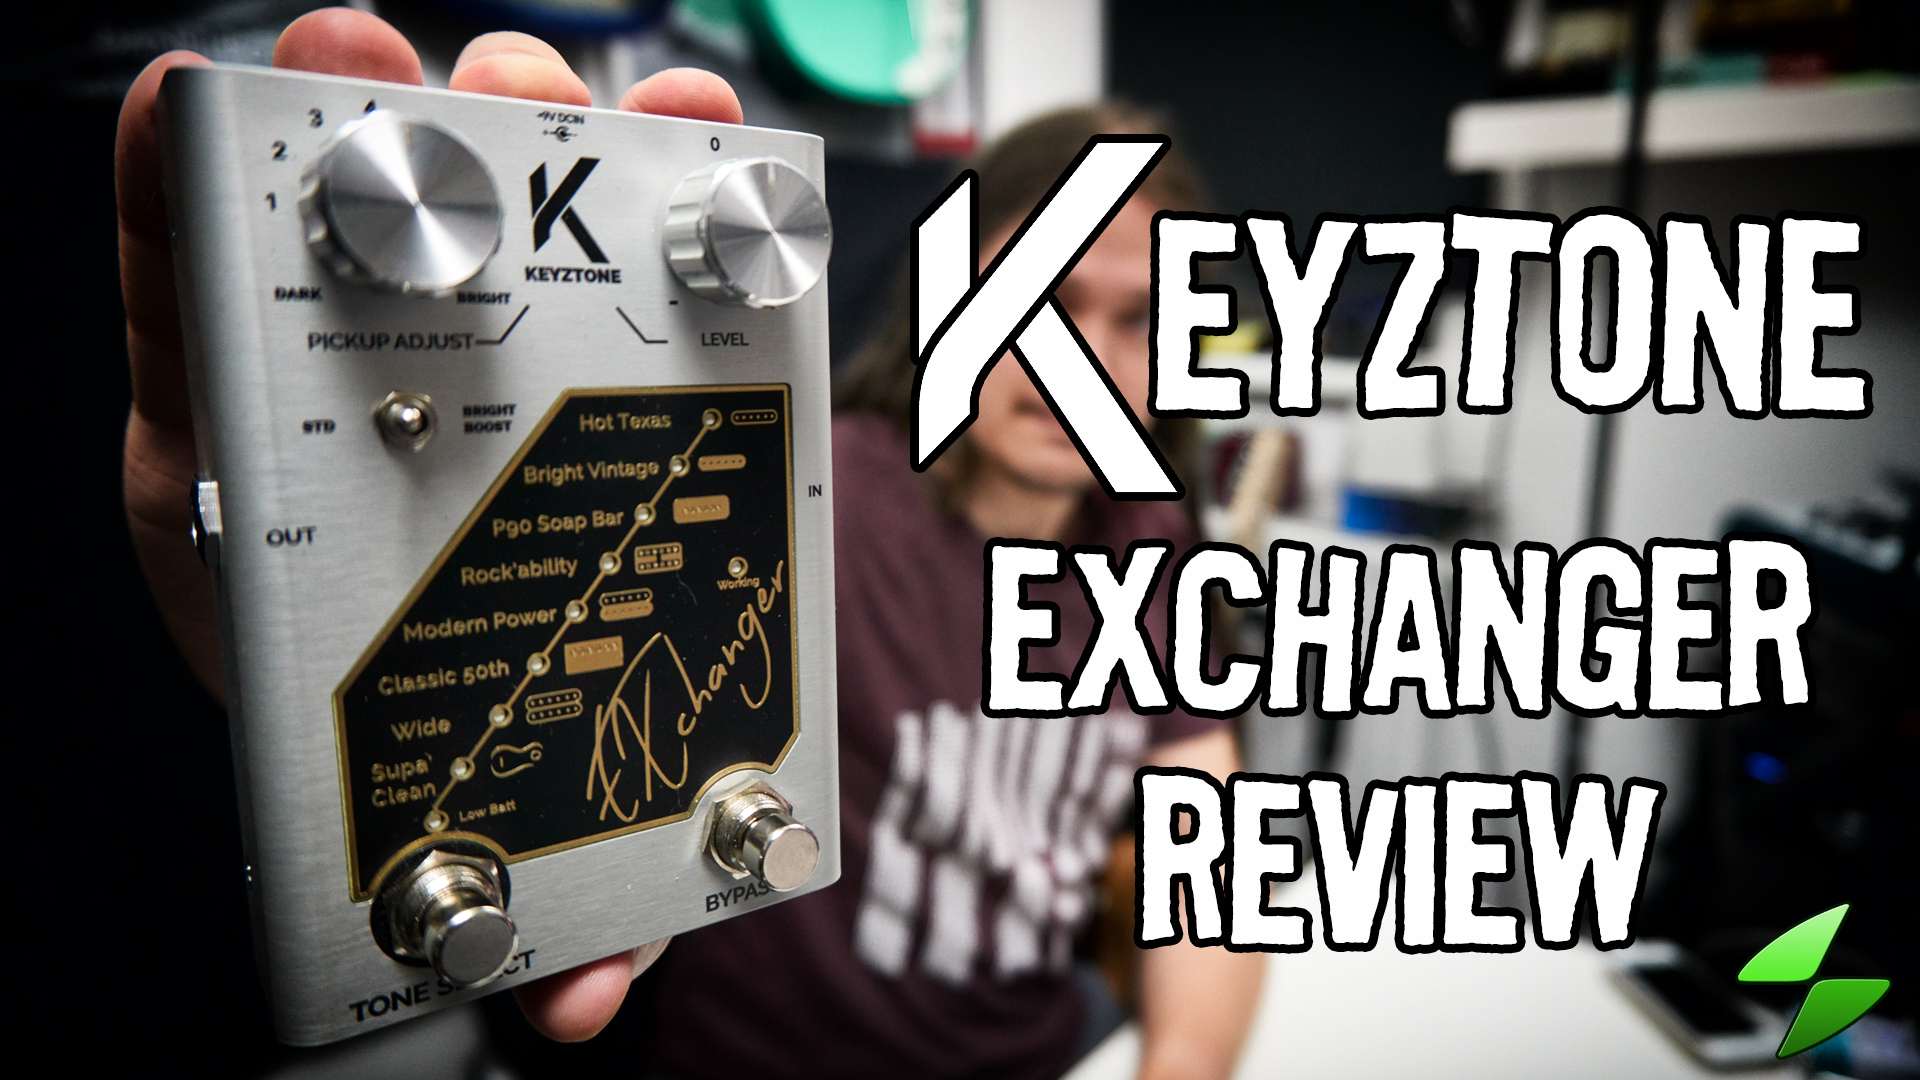 Keyztone exchanger